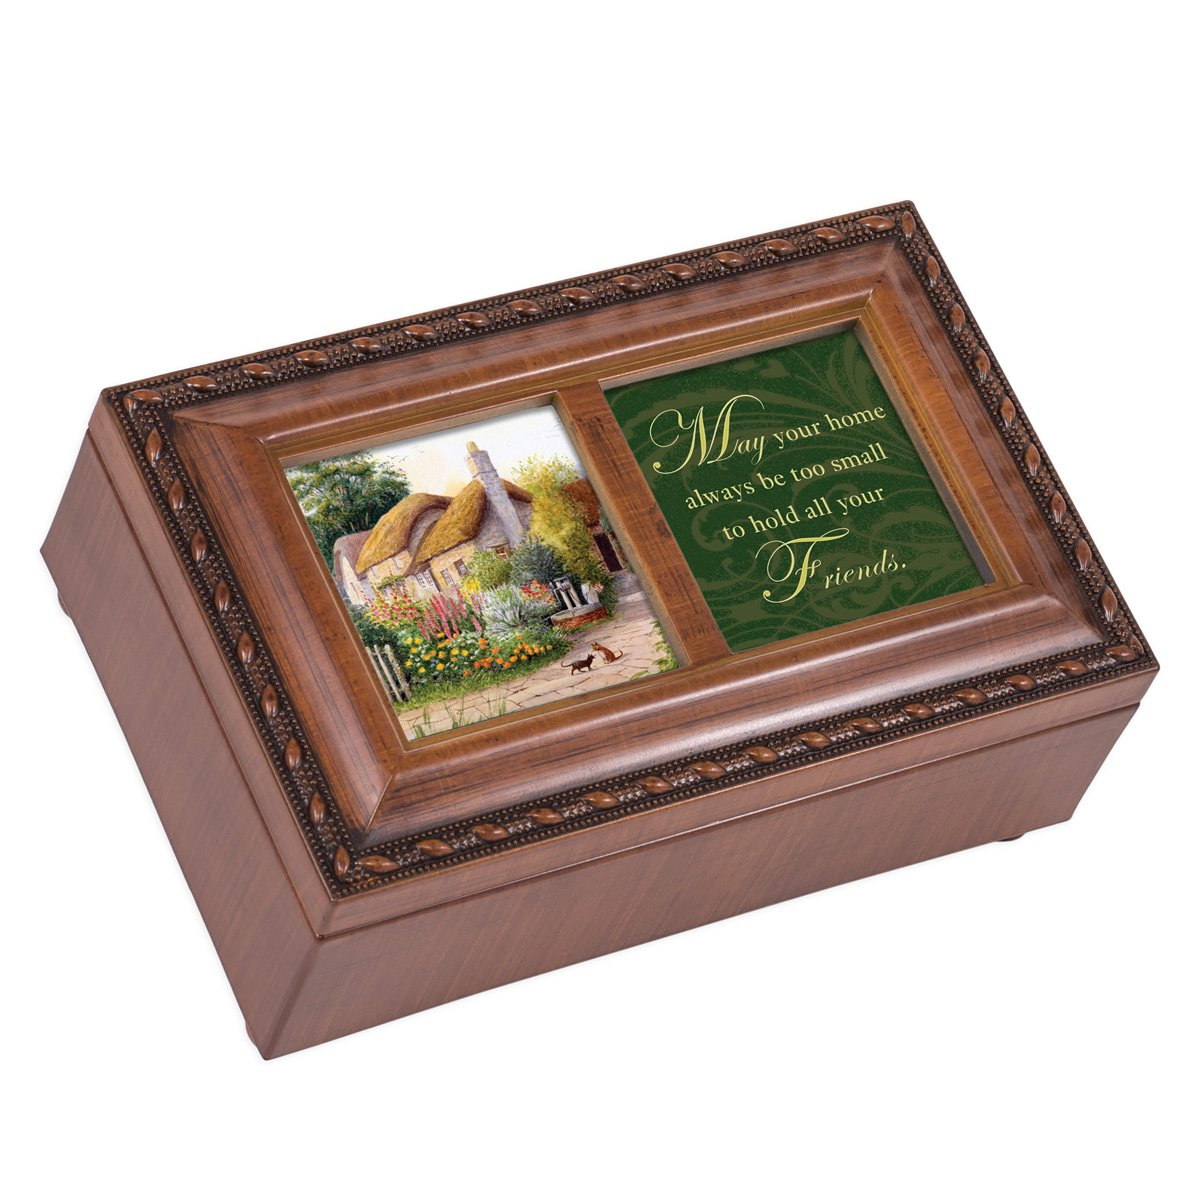 Cottage Garden May Your Home Hold Your Friends Wood Finish Small Jewelry Music Box Plays Irish Eyes Smiling